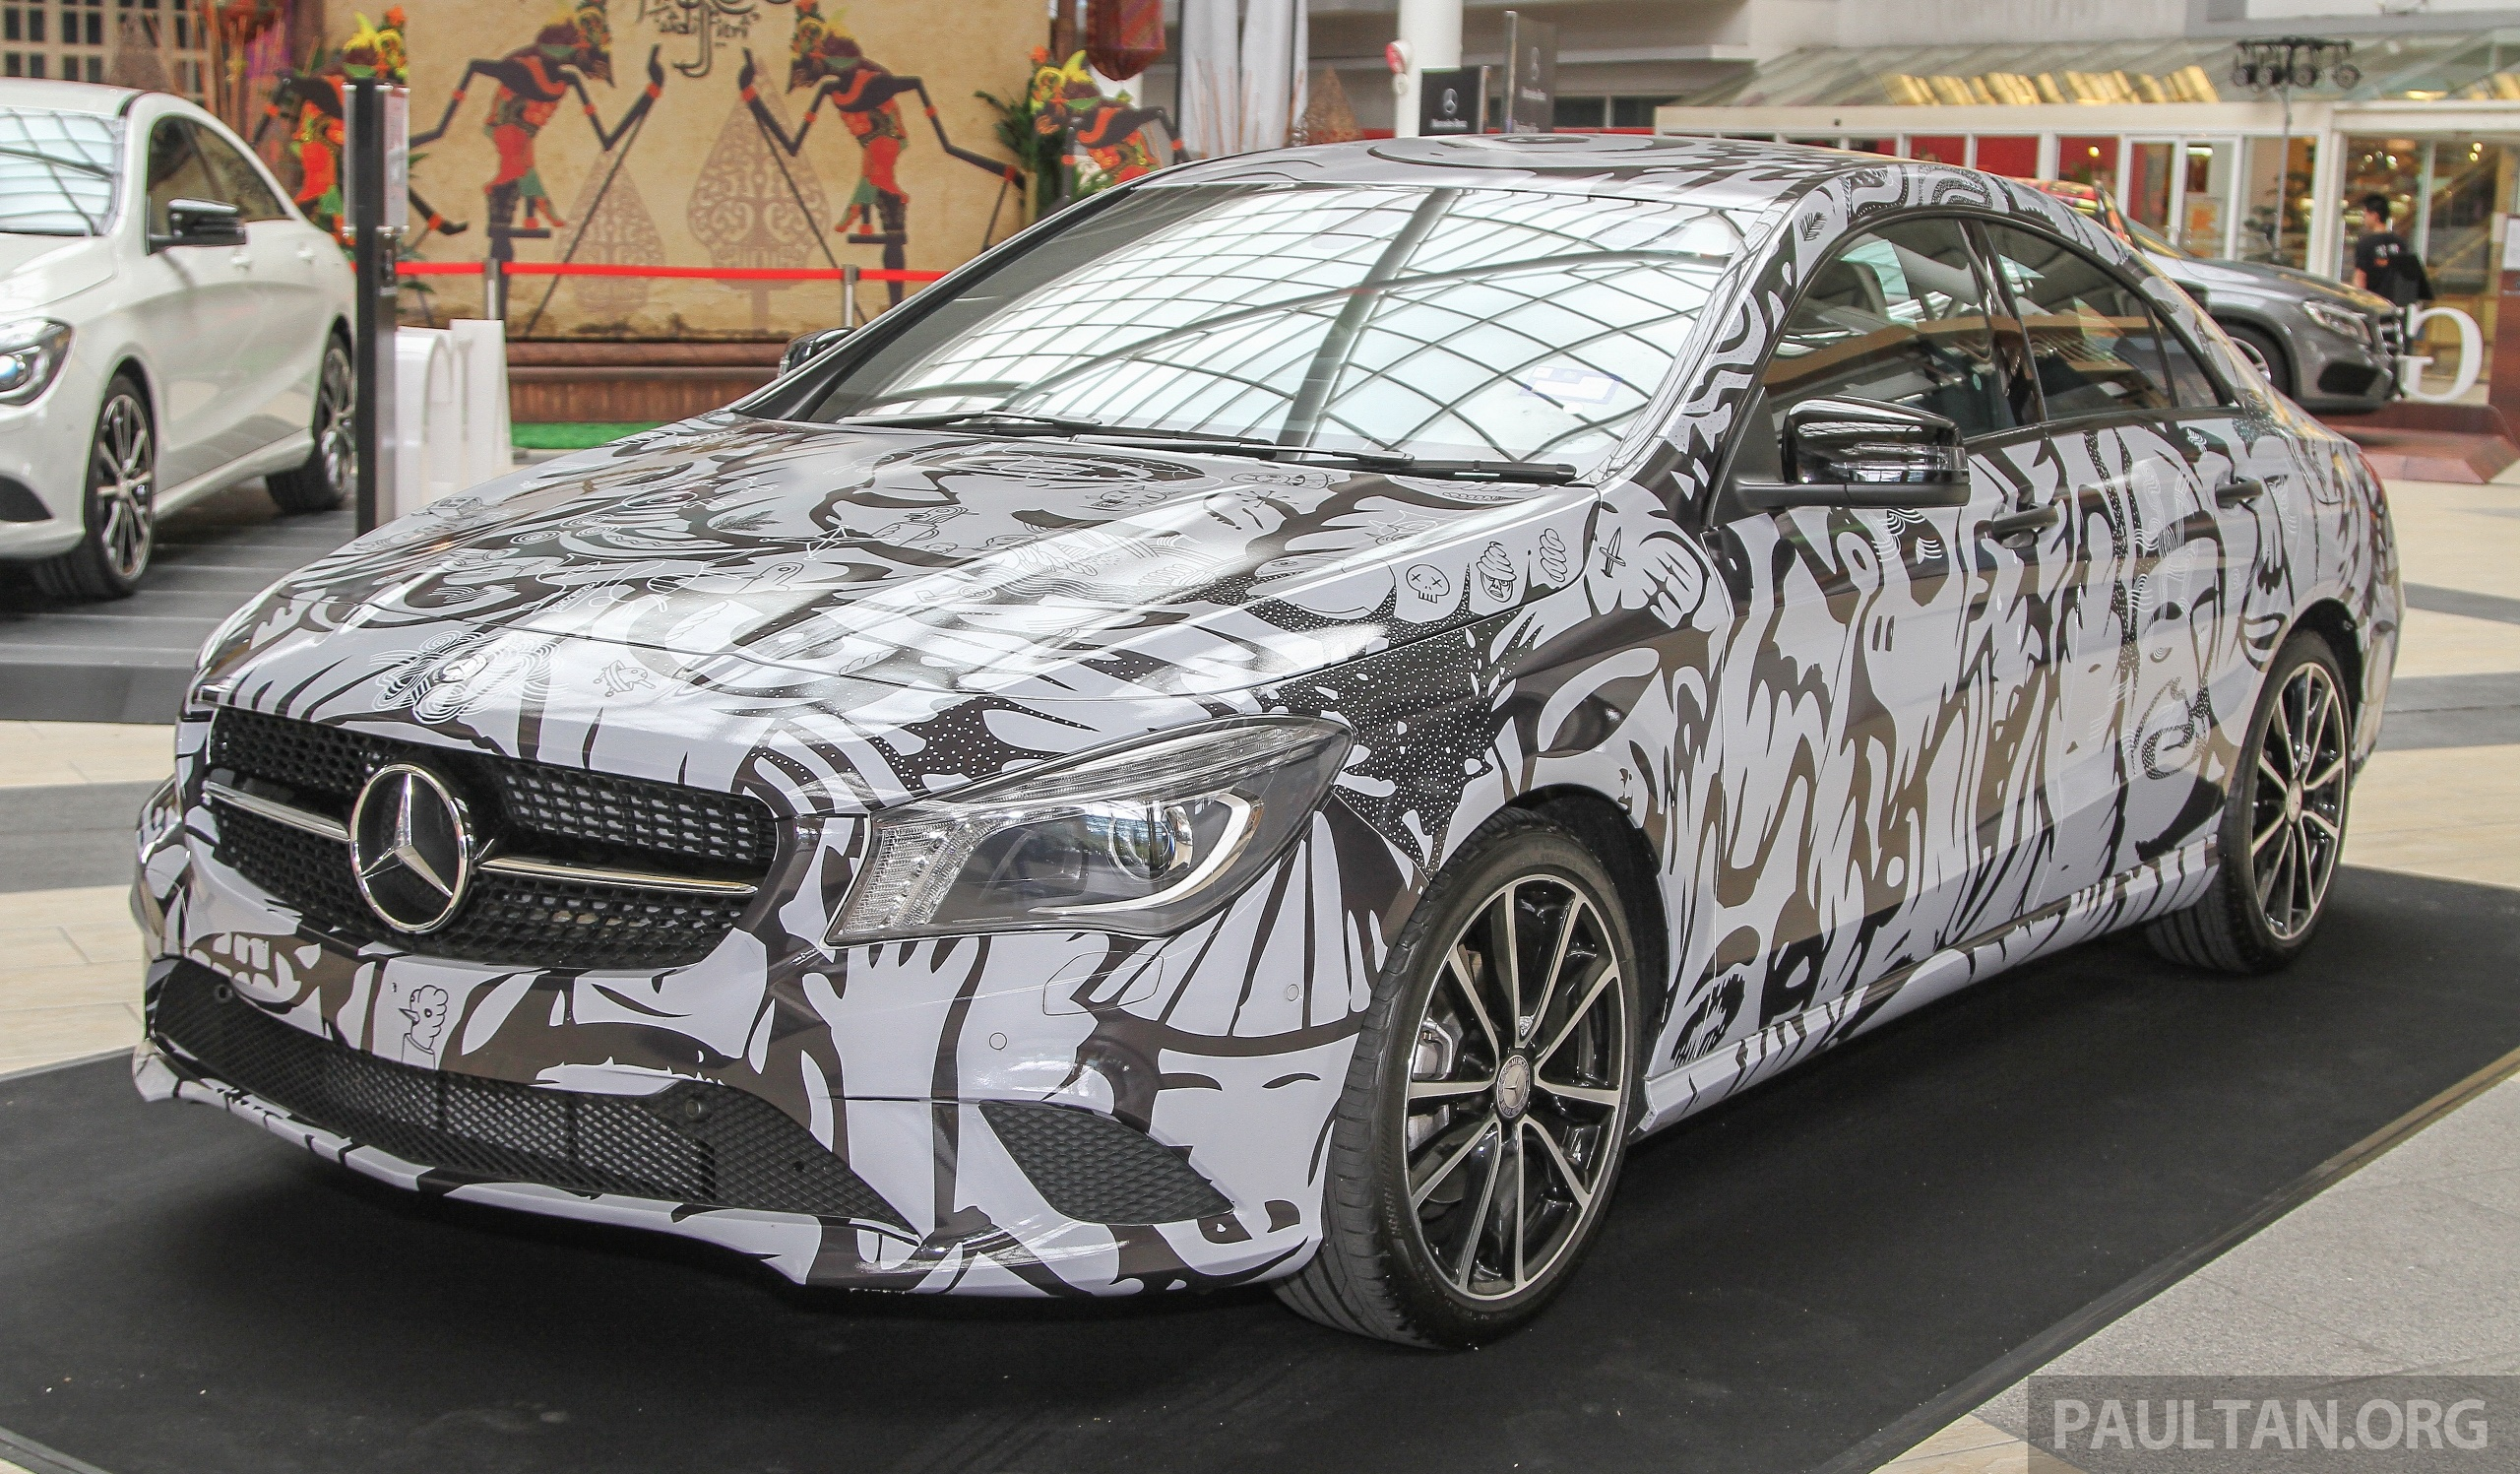 Mercedes benz urban hunting a cla gla art cars image for Mercedes benz cars com